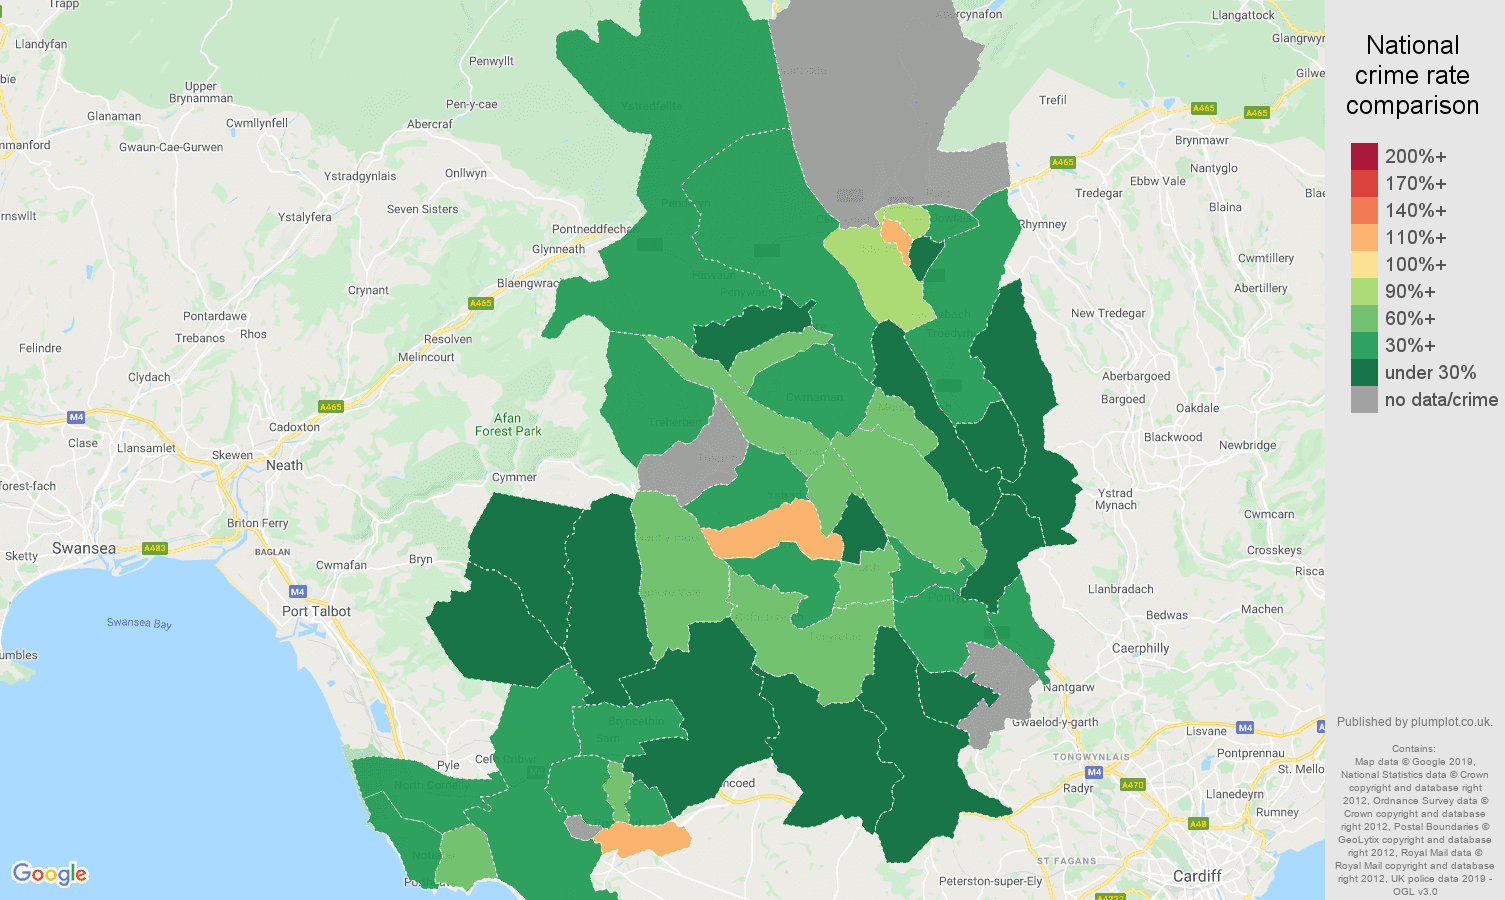 Mid Glamorgan possession of weapons crime rate comparison map